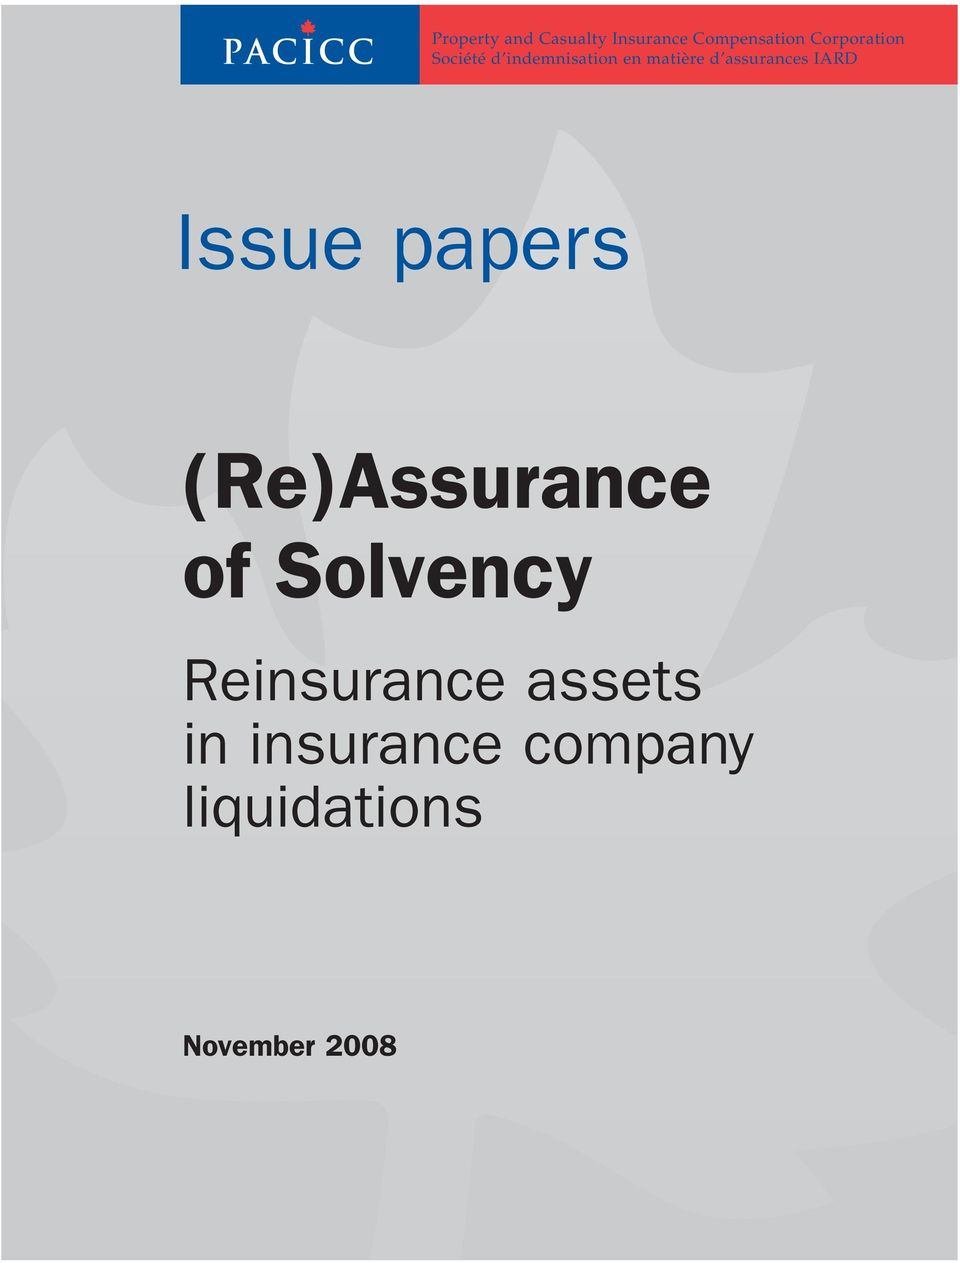 assurances IARD Issue papers (Re)Assurance of